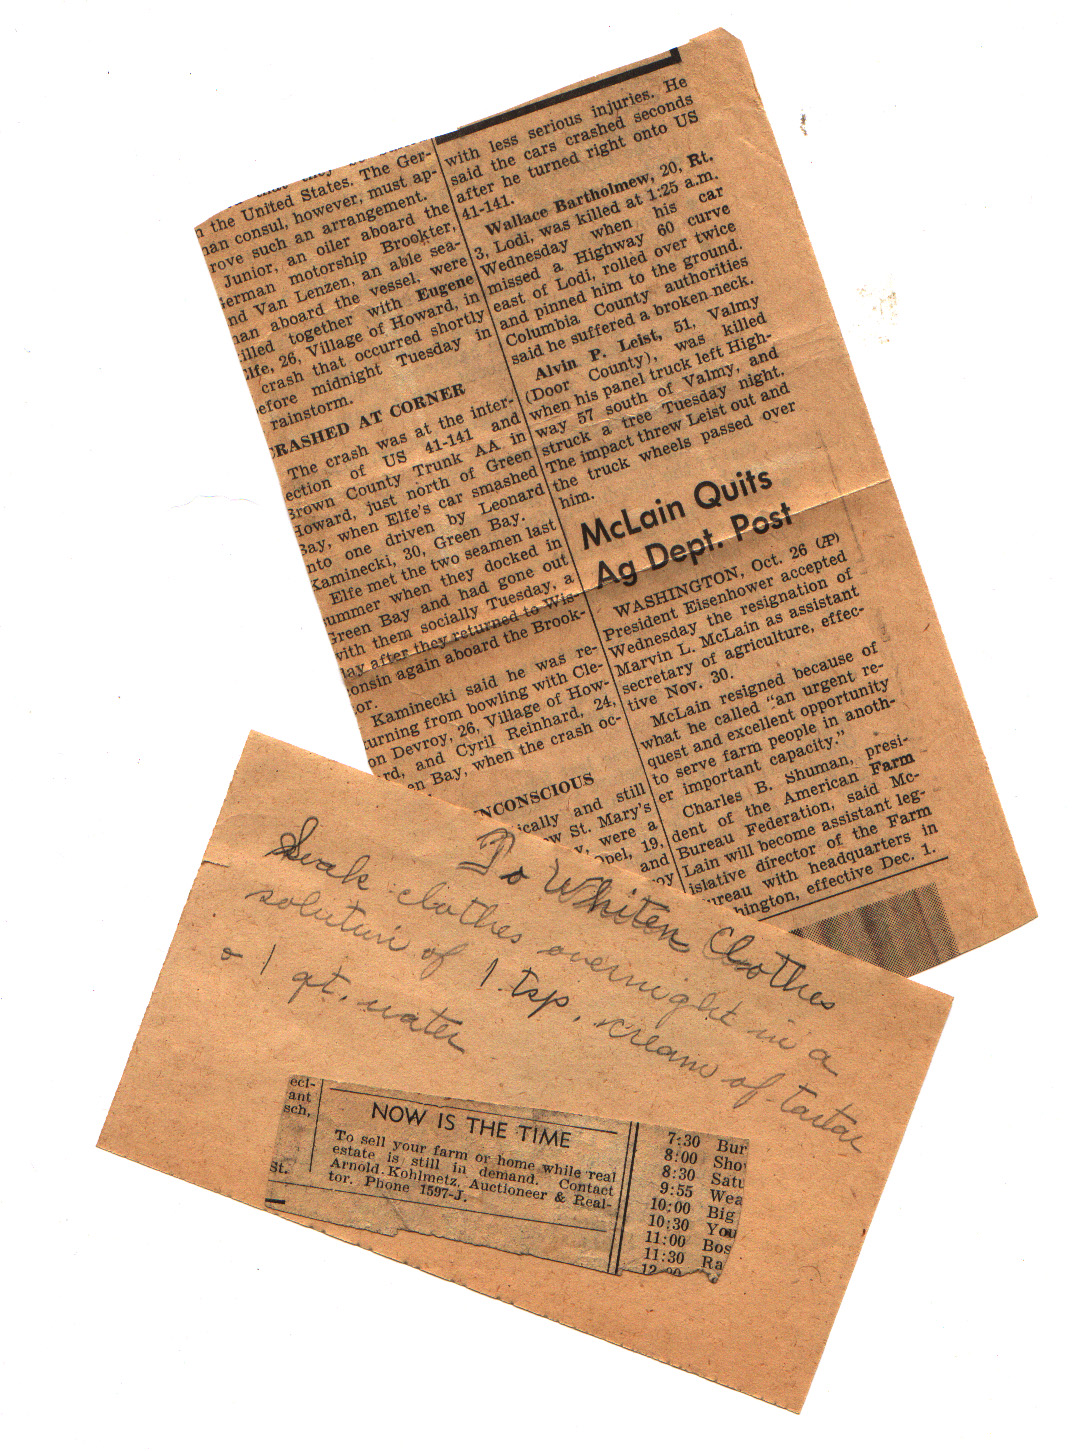 Dating Old Newspaper Clippings (And Some Telephone Number History ...